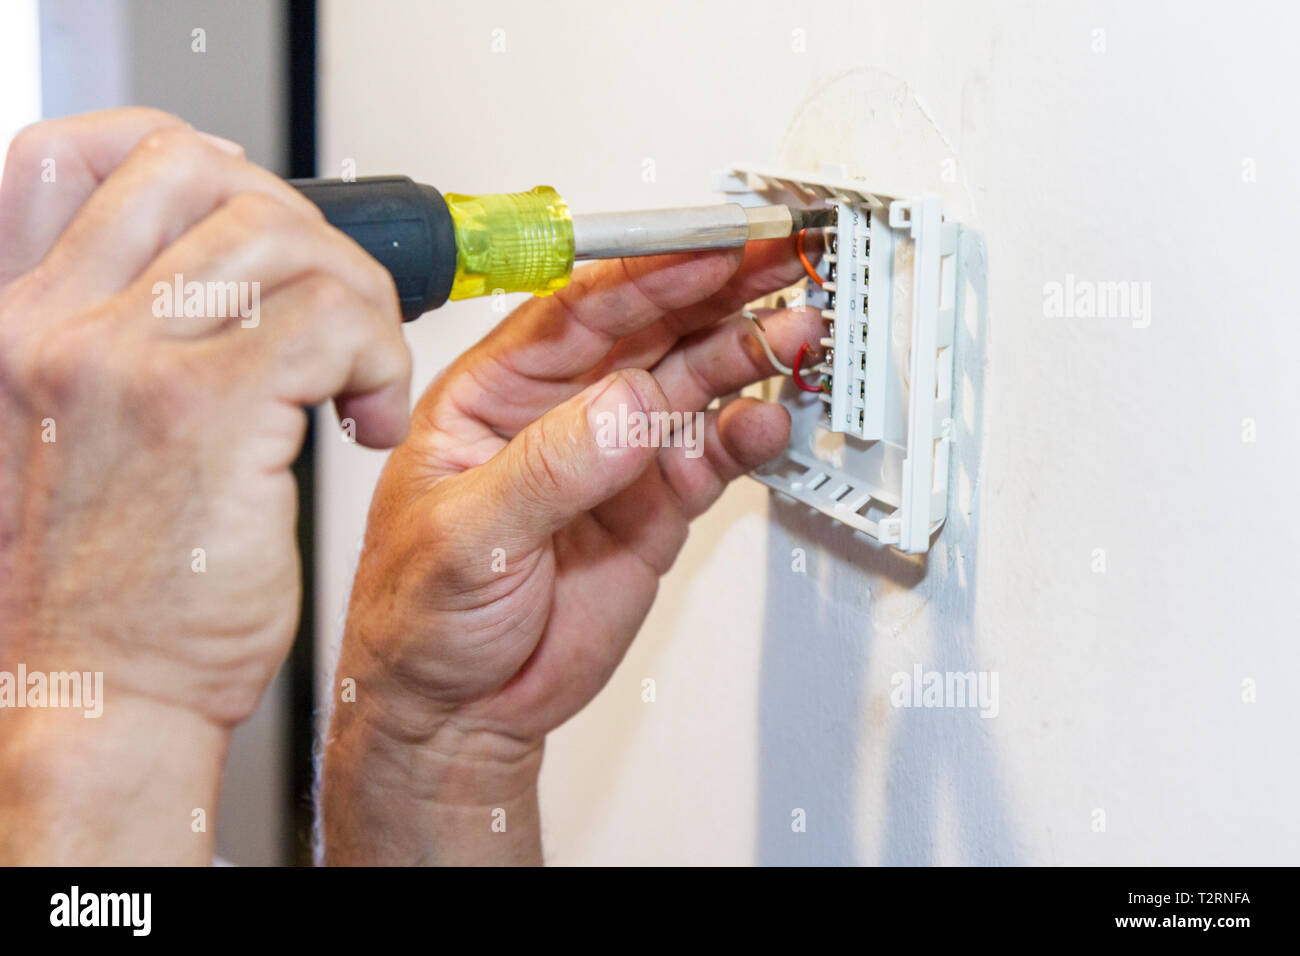 Miami Beach Florida Presidential Condominiums air conditioning mechanic hands worker repairman digital thermostat install instal - Stock Image